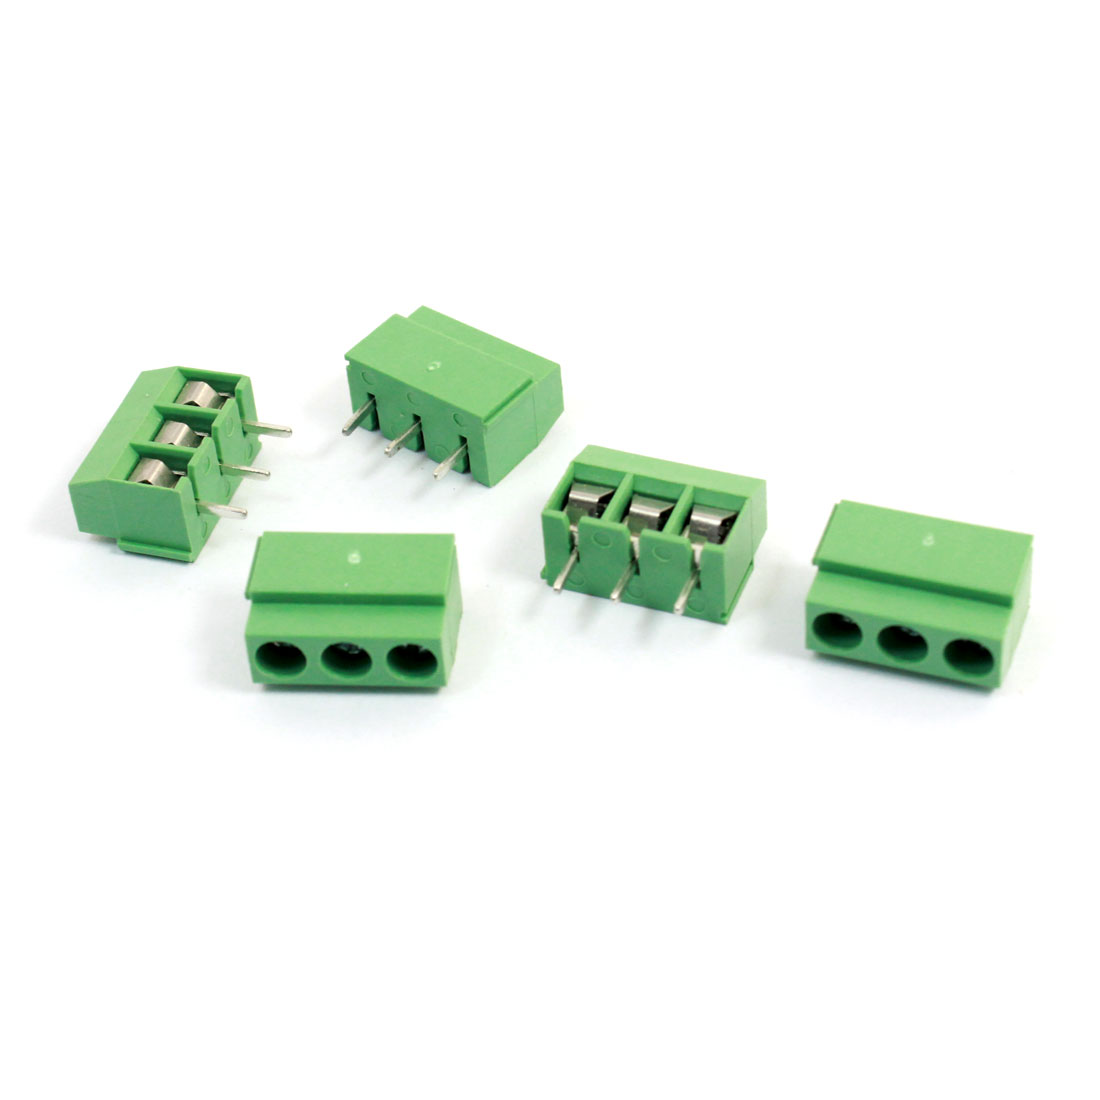 5 Pcs 120-3P 3Position 3Pin 5mm Pitch Screw Terminal Block 300V 10A